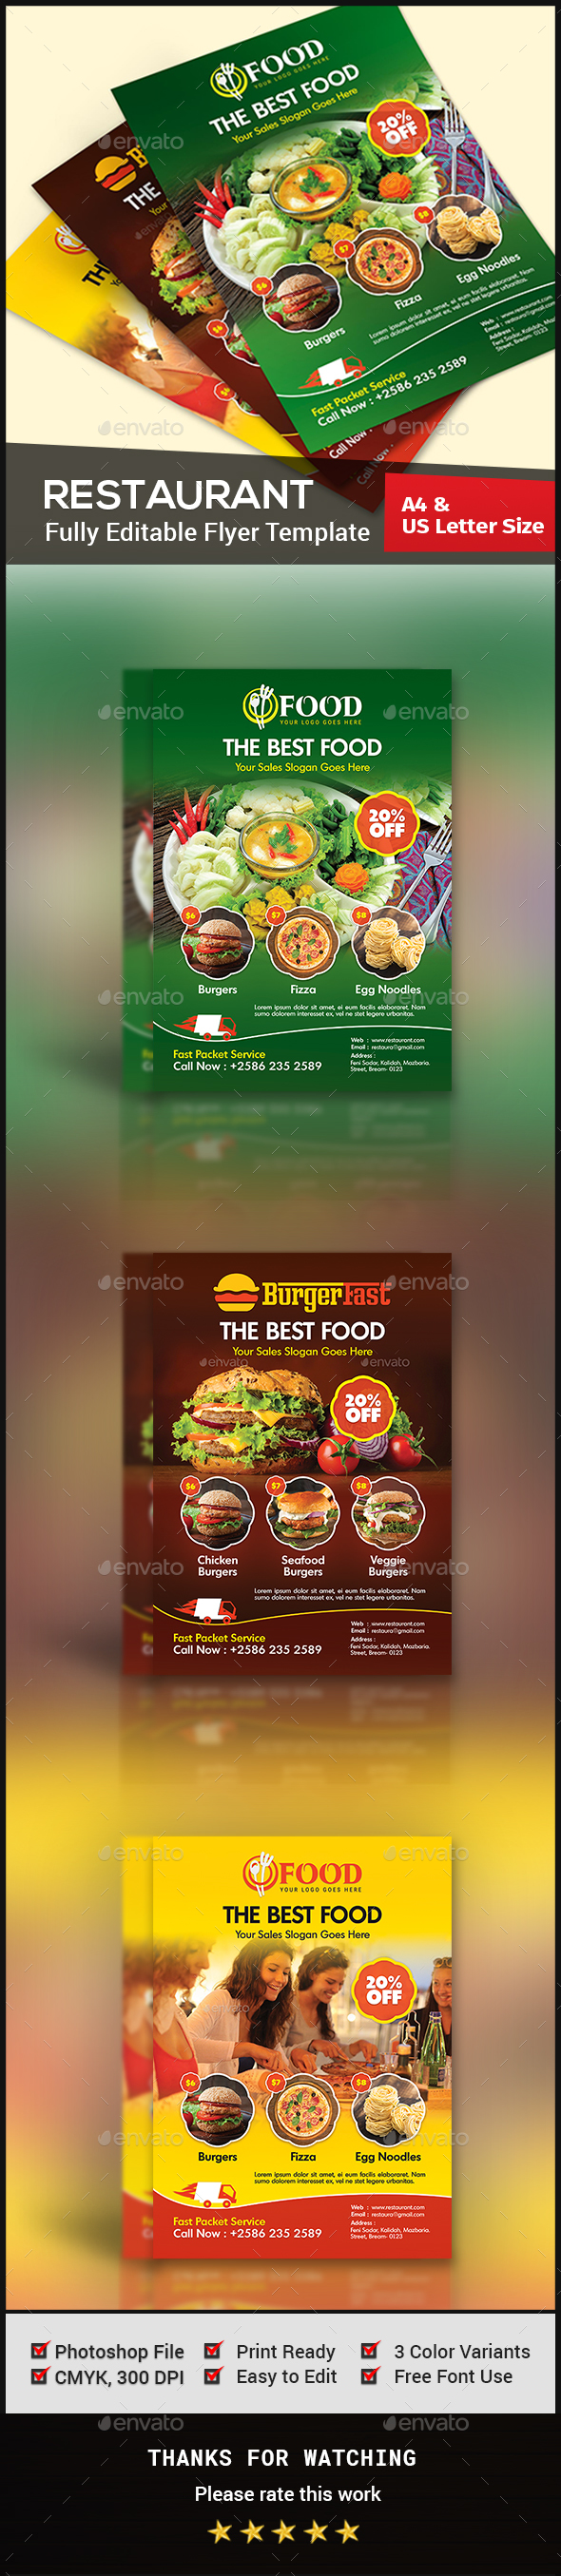 Restaurant Flyer - Restaurant Flyers